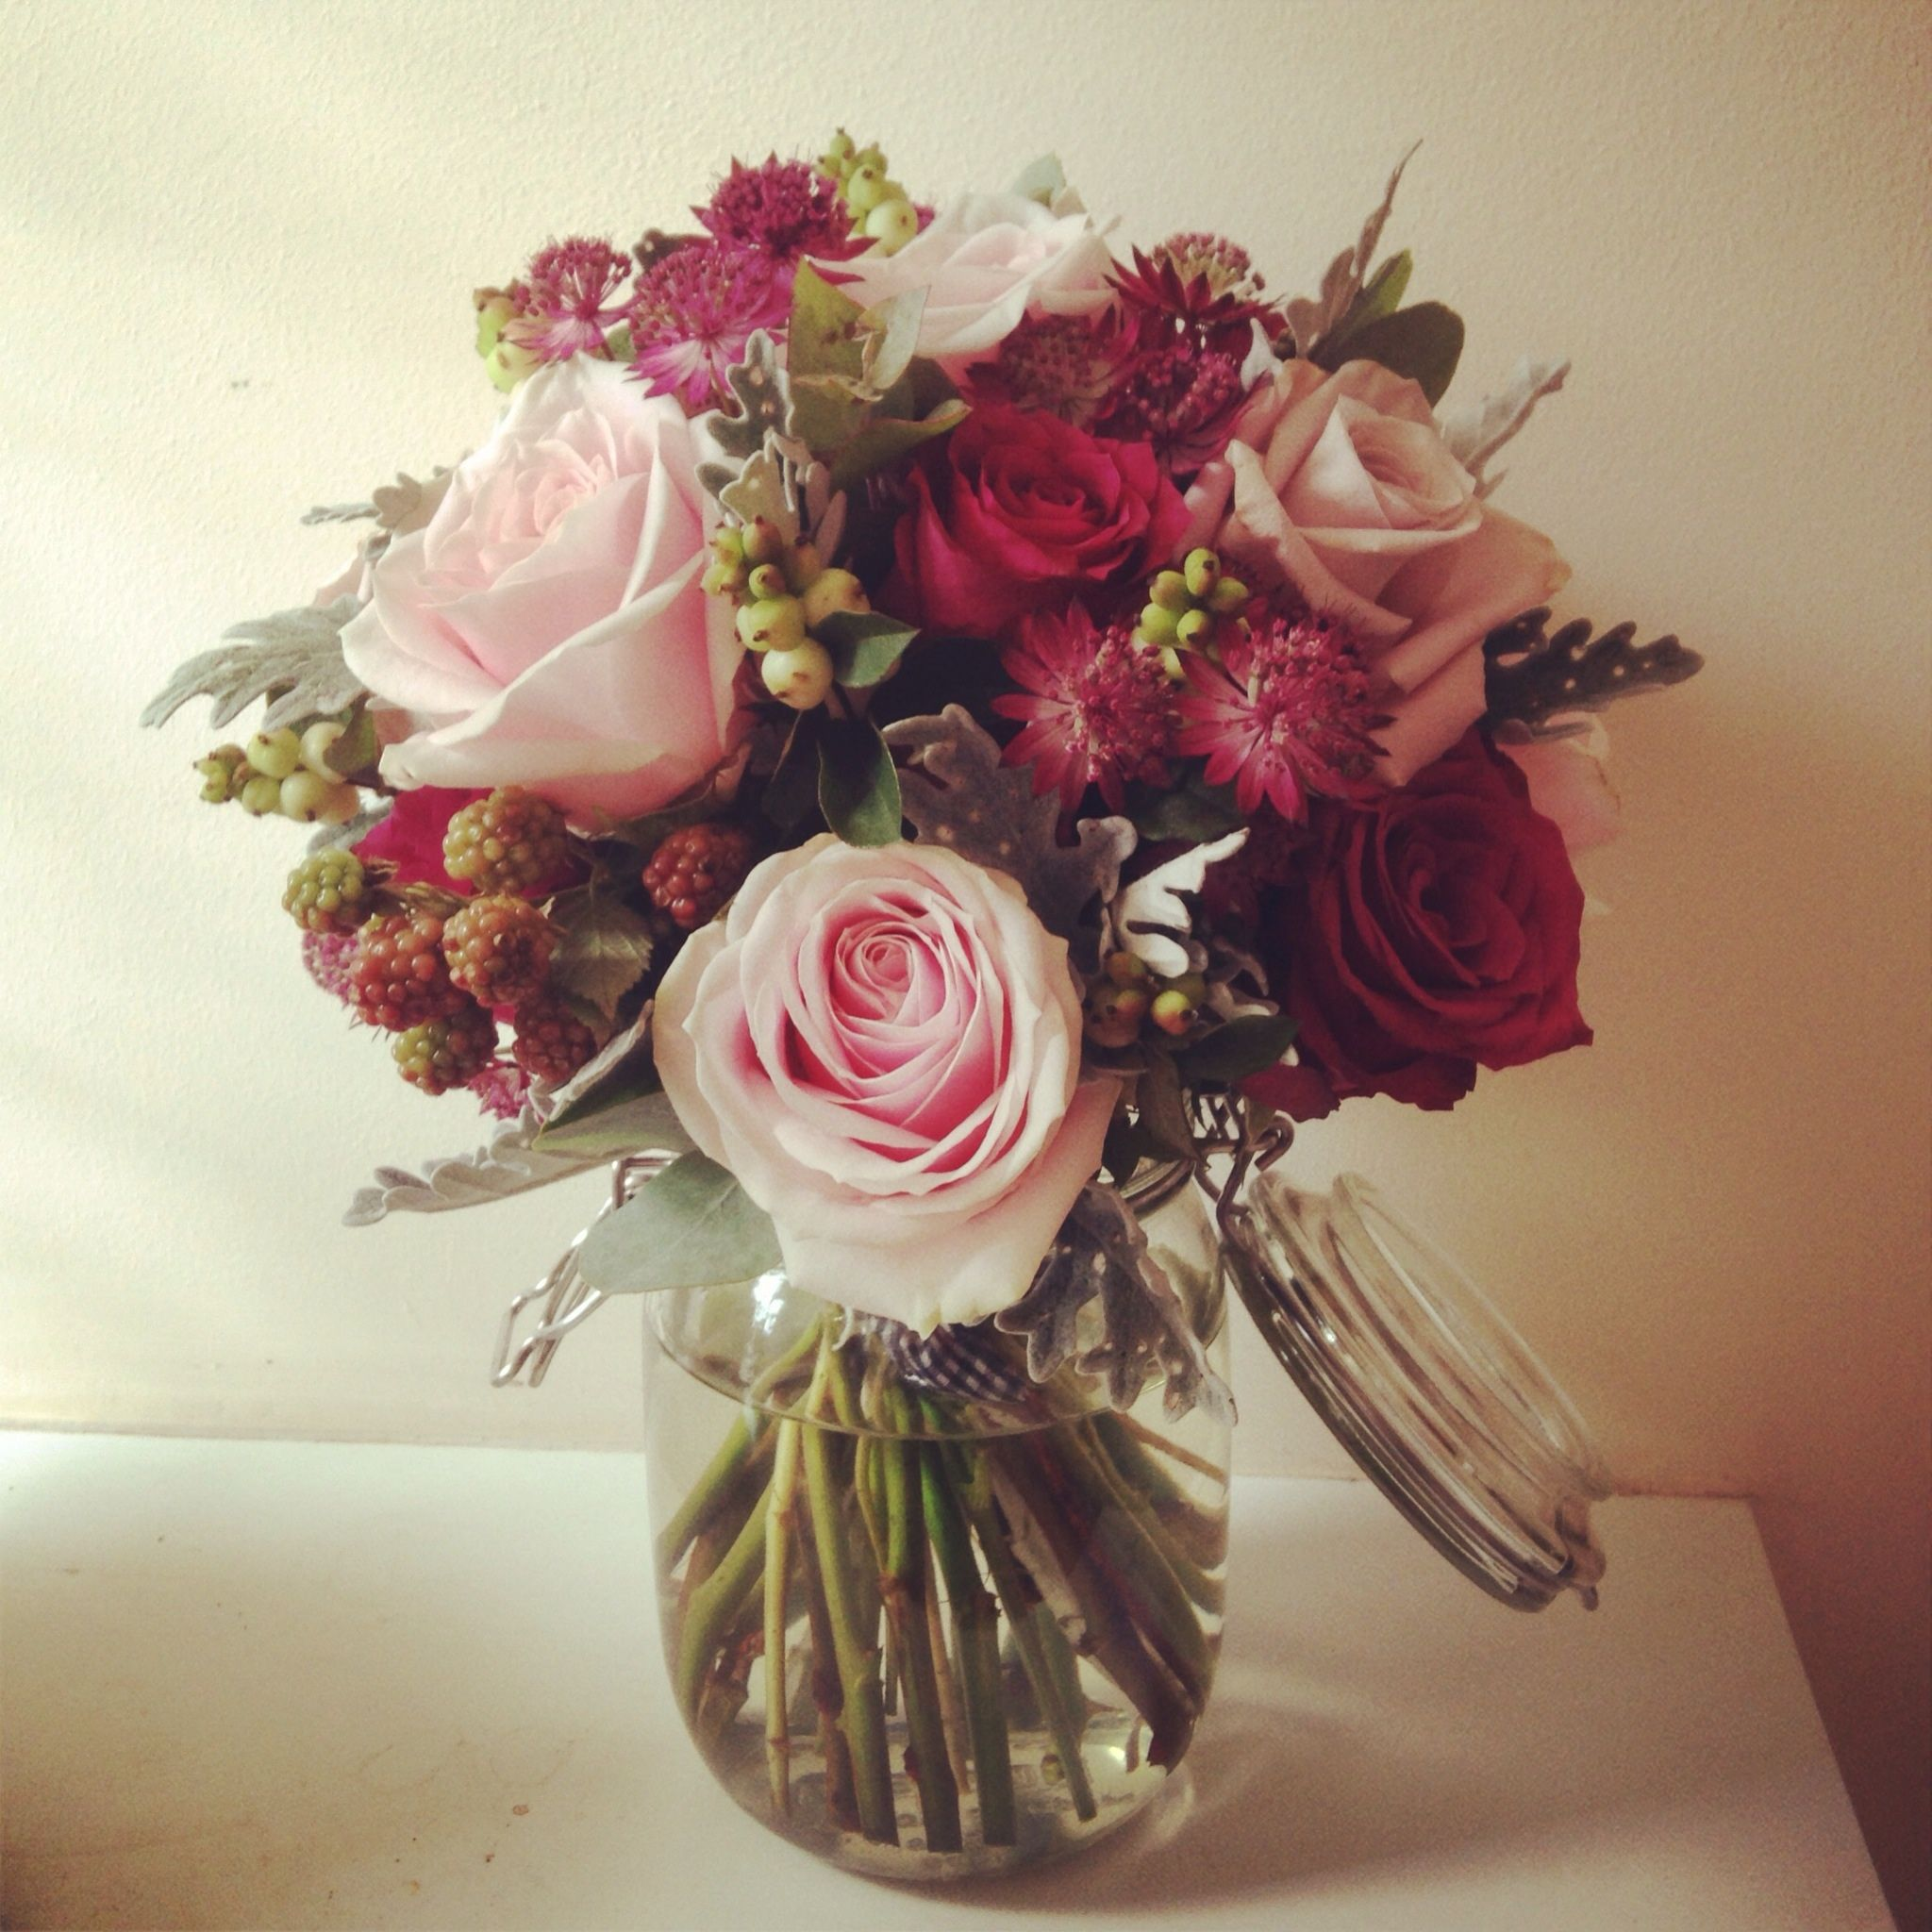 Very english country garden. Lovely deep pink roses | Rustic wedding ...